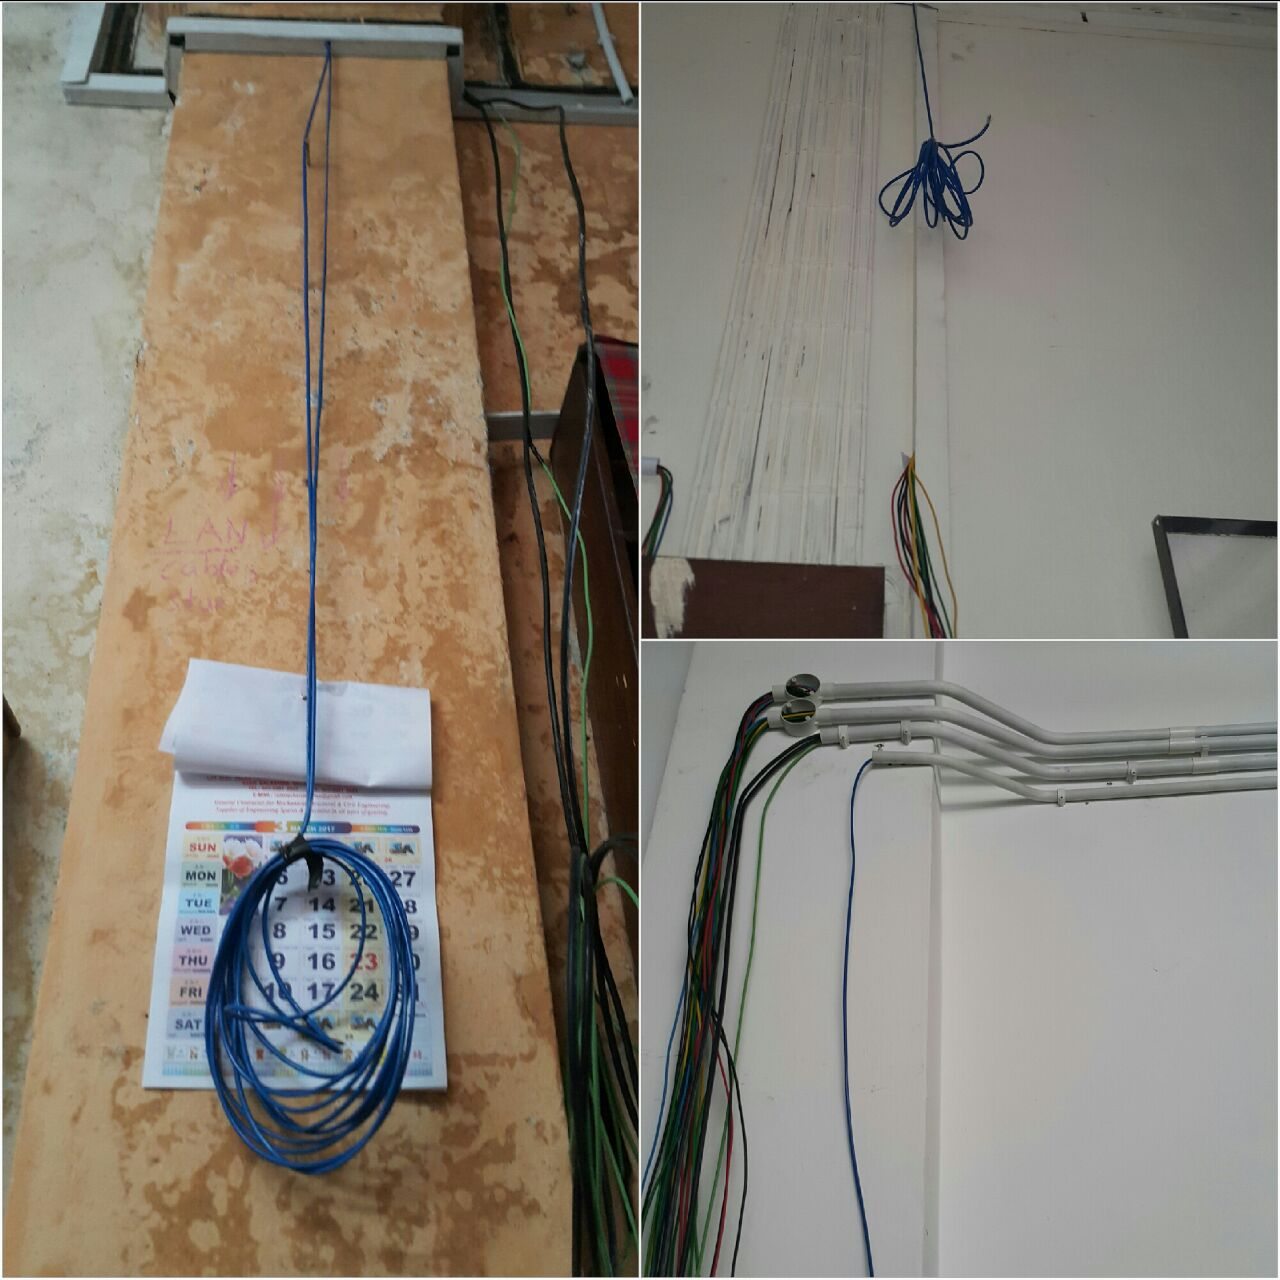 lan cables being installed [ 1280 x 1280 Pixel ]